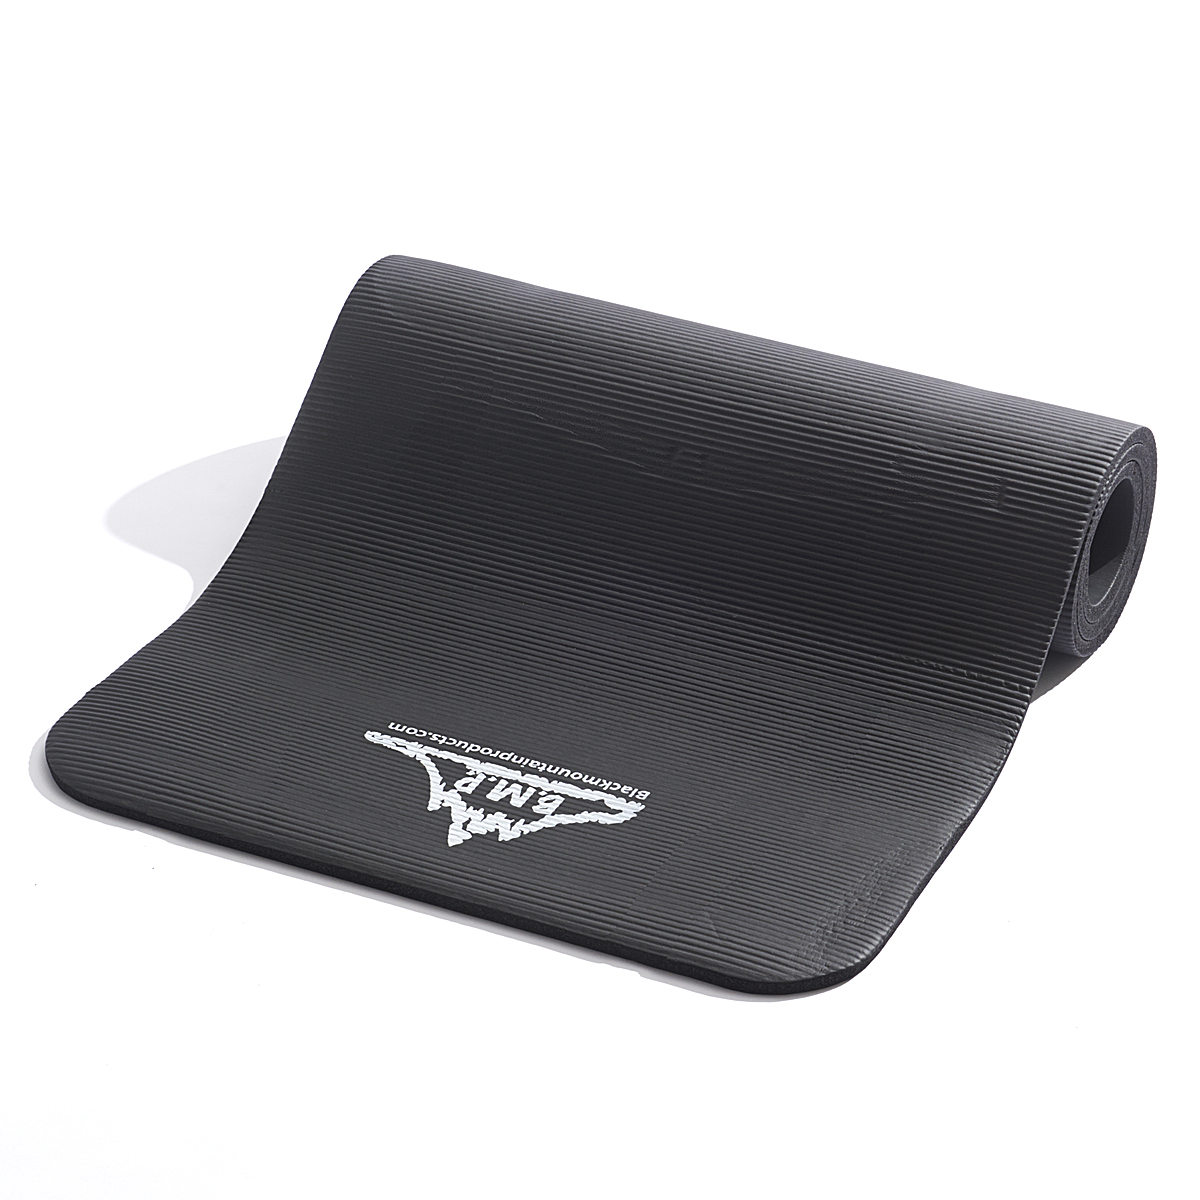 Black Mountain Products Yoga and Exercise Mat, 1 2 x 73 1 2 x 24 1 2-Inch by Black Mountain Products